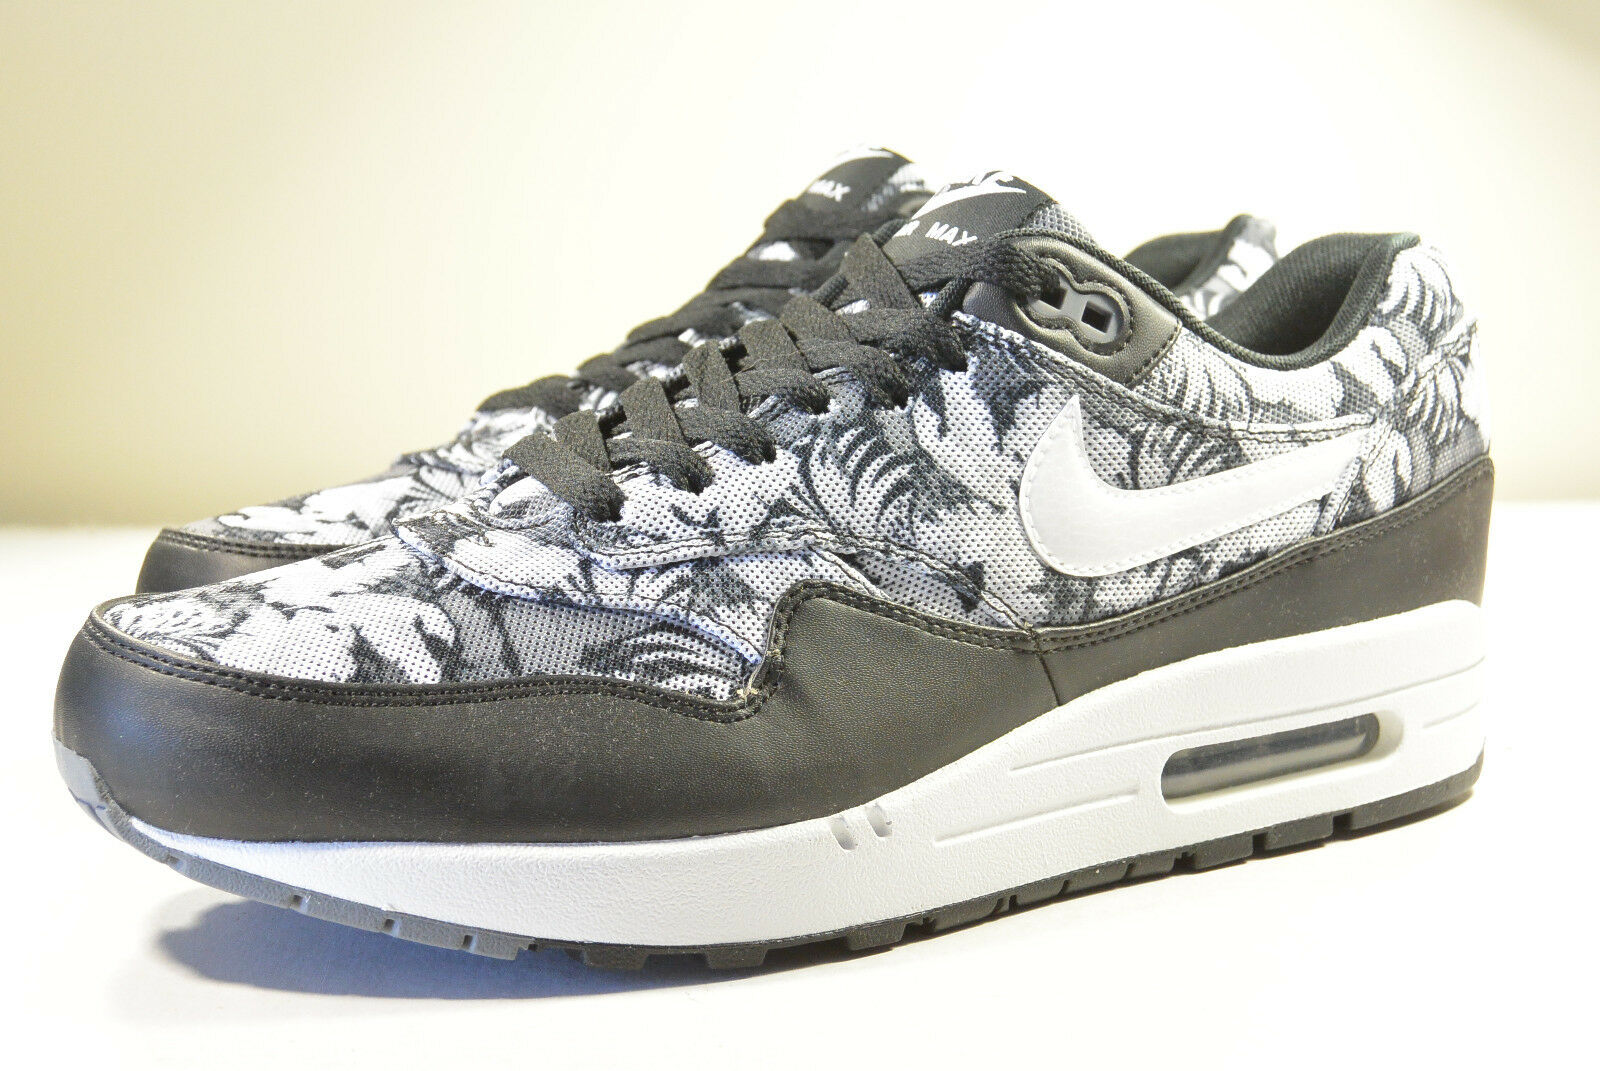 DS 2014 NIKE AIR MAX 1 GPX BLACK GREY 9 SUPREME HYPERFUSE ATMOS SAFARI 95 90